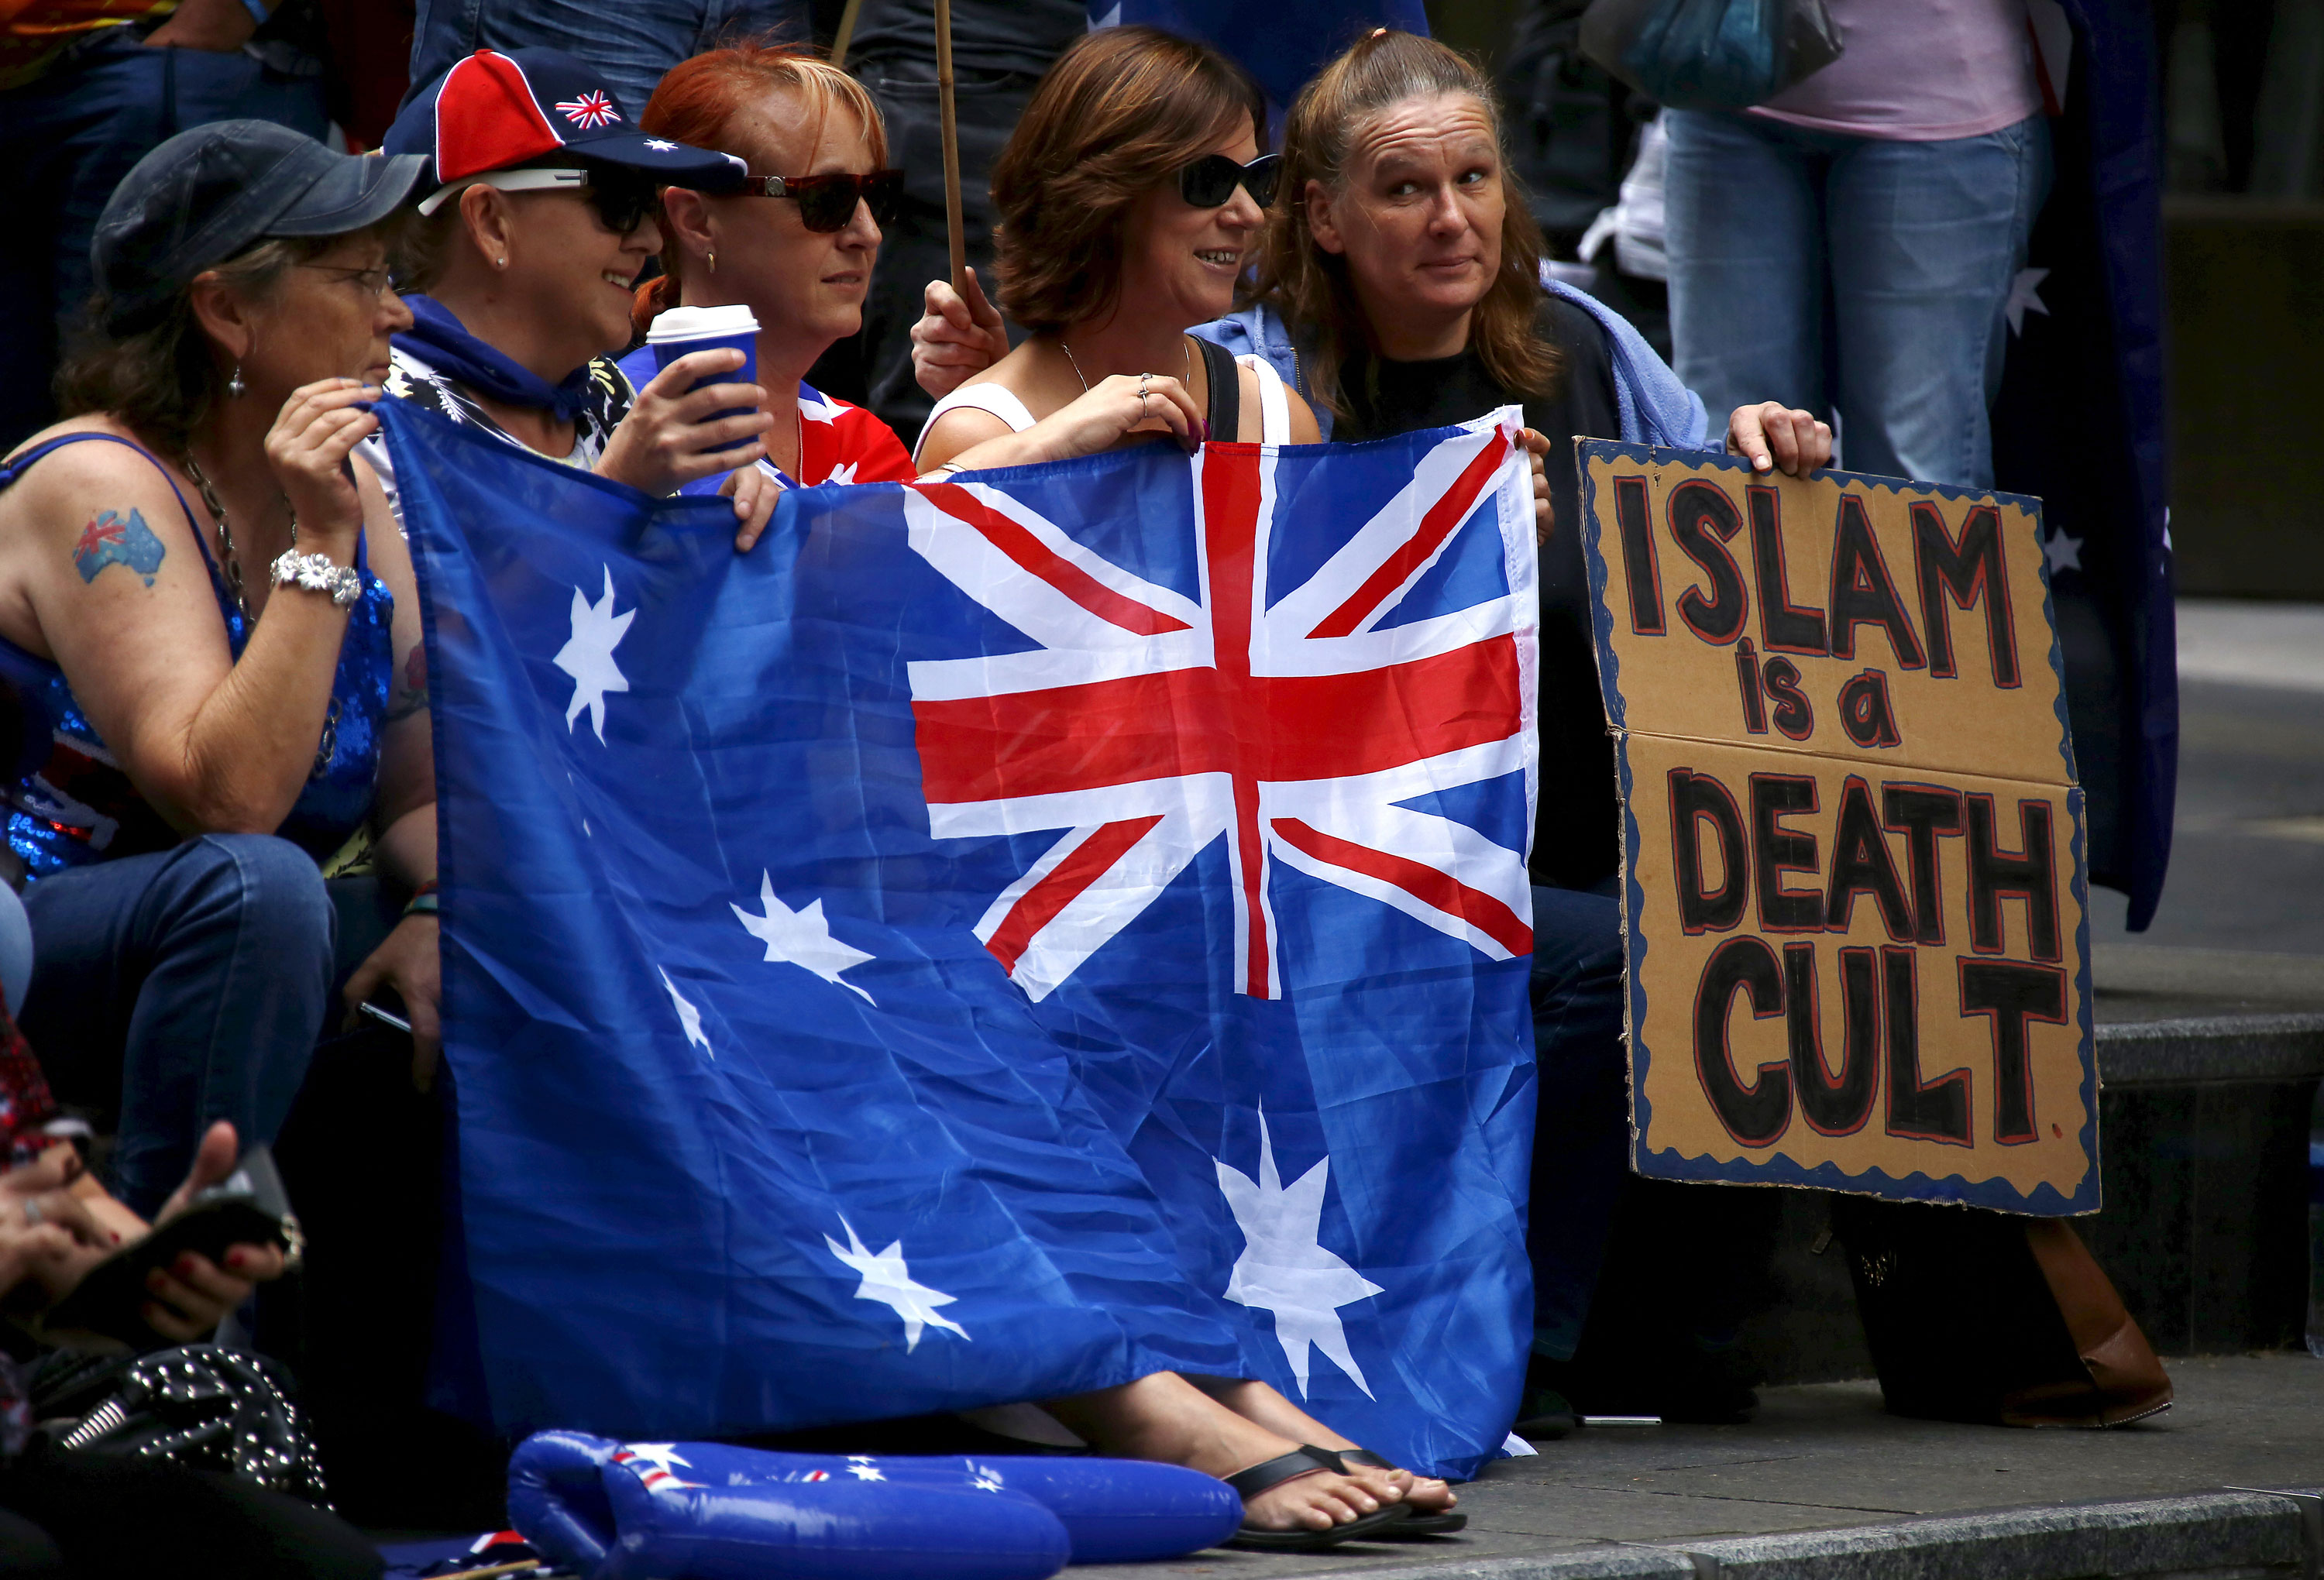 Anti-Islam demonstrators and a similar number of anti-racism activists held rallies in Sydney's Martin Place, as part of a national day of protest, with similar rallies in Melbourne and other cities. [David Gray/Reuters]